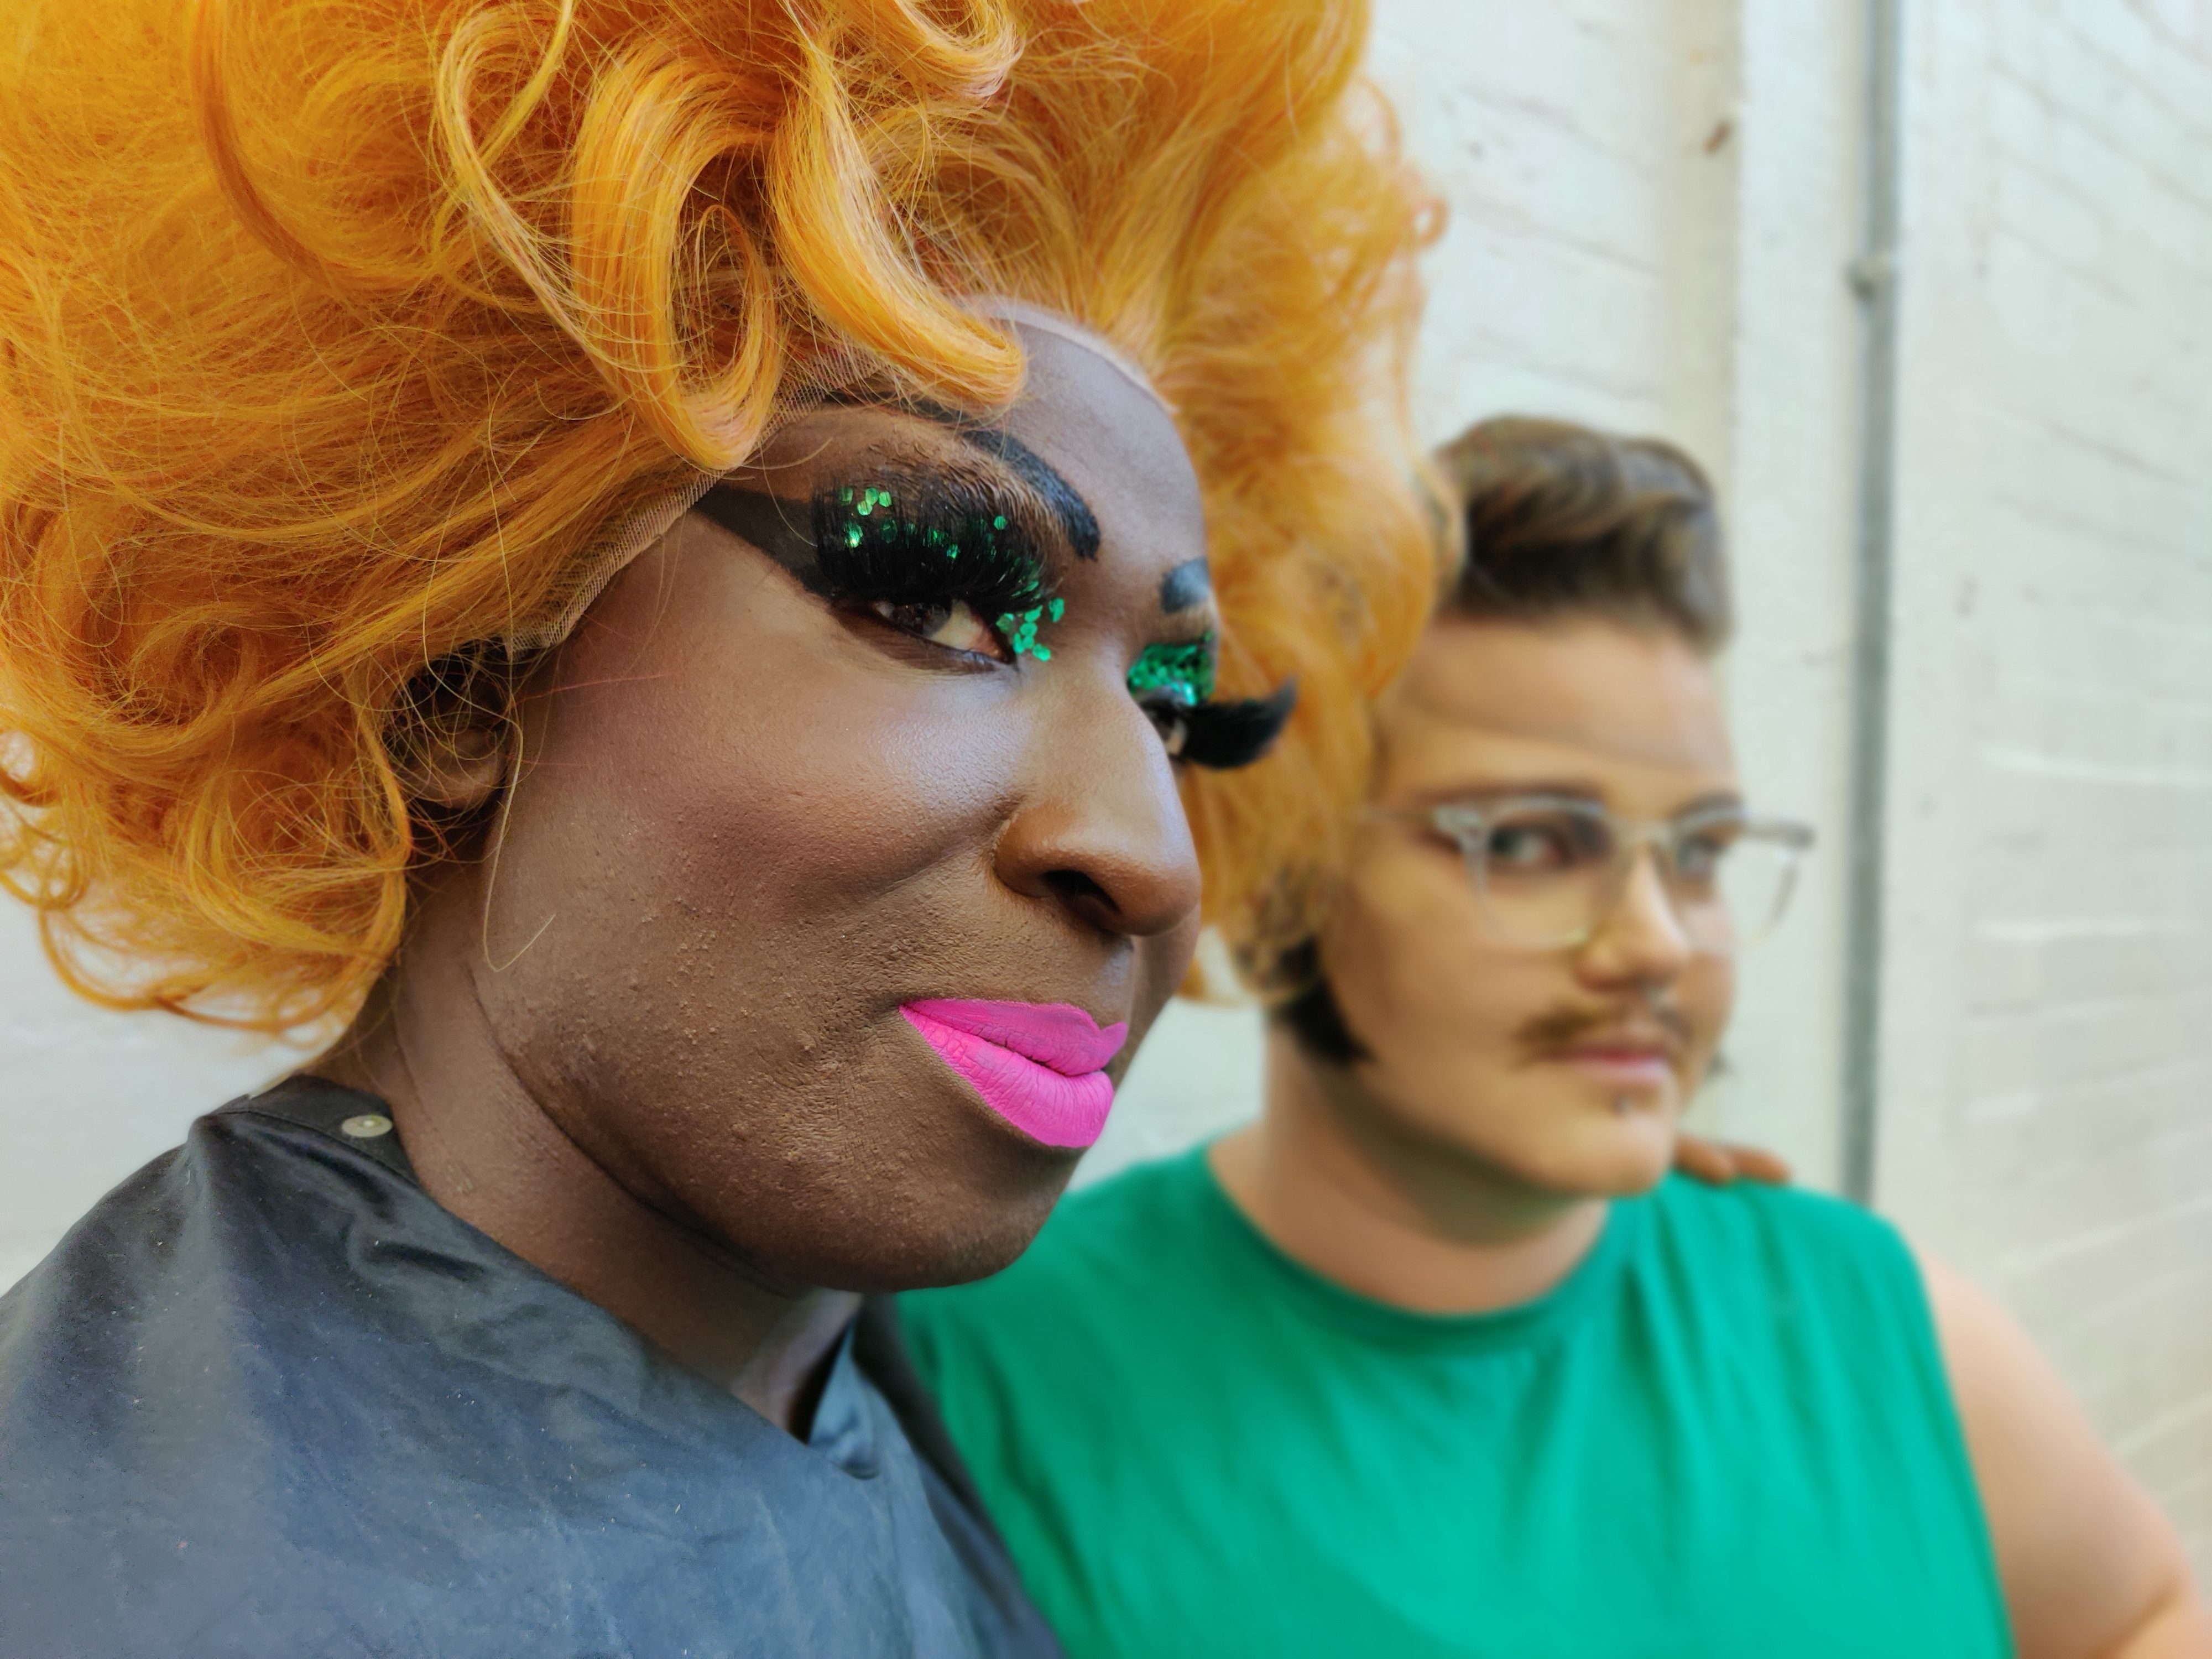 a close up image of a person in a large orange wig abd green glittery make up, with their arm around someone who is wearing a green t-shirt